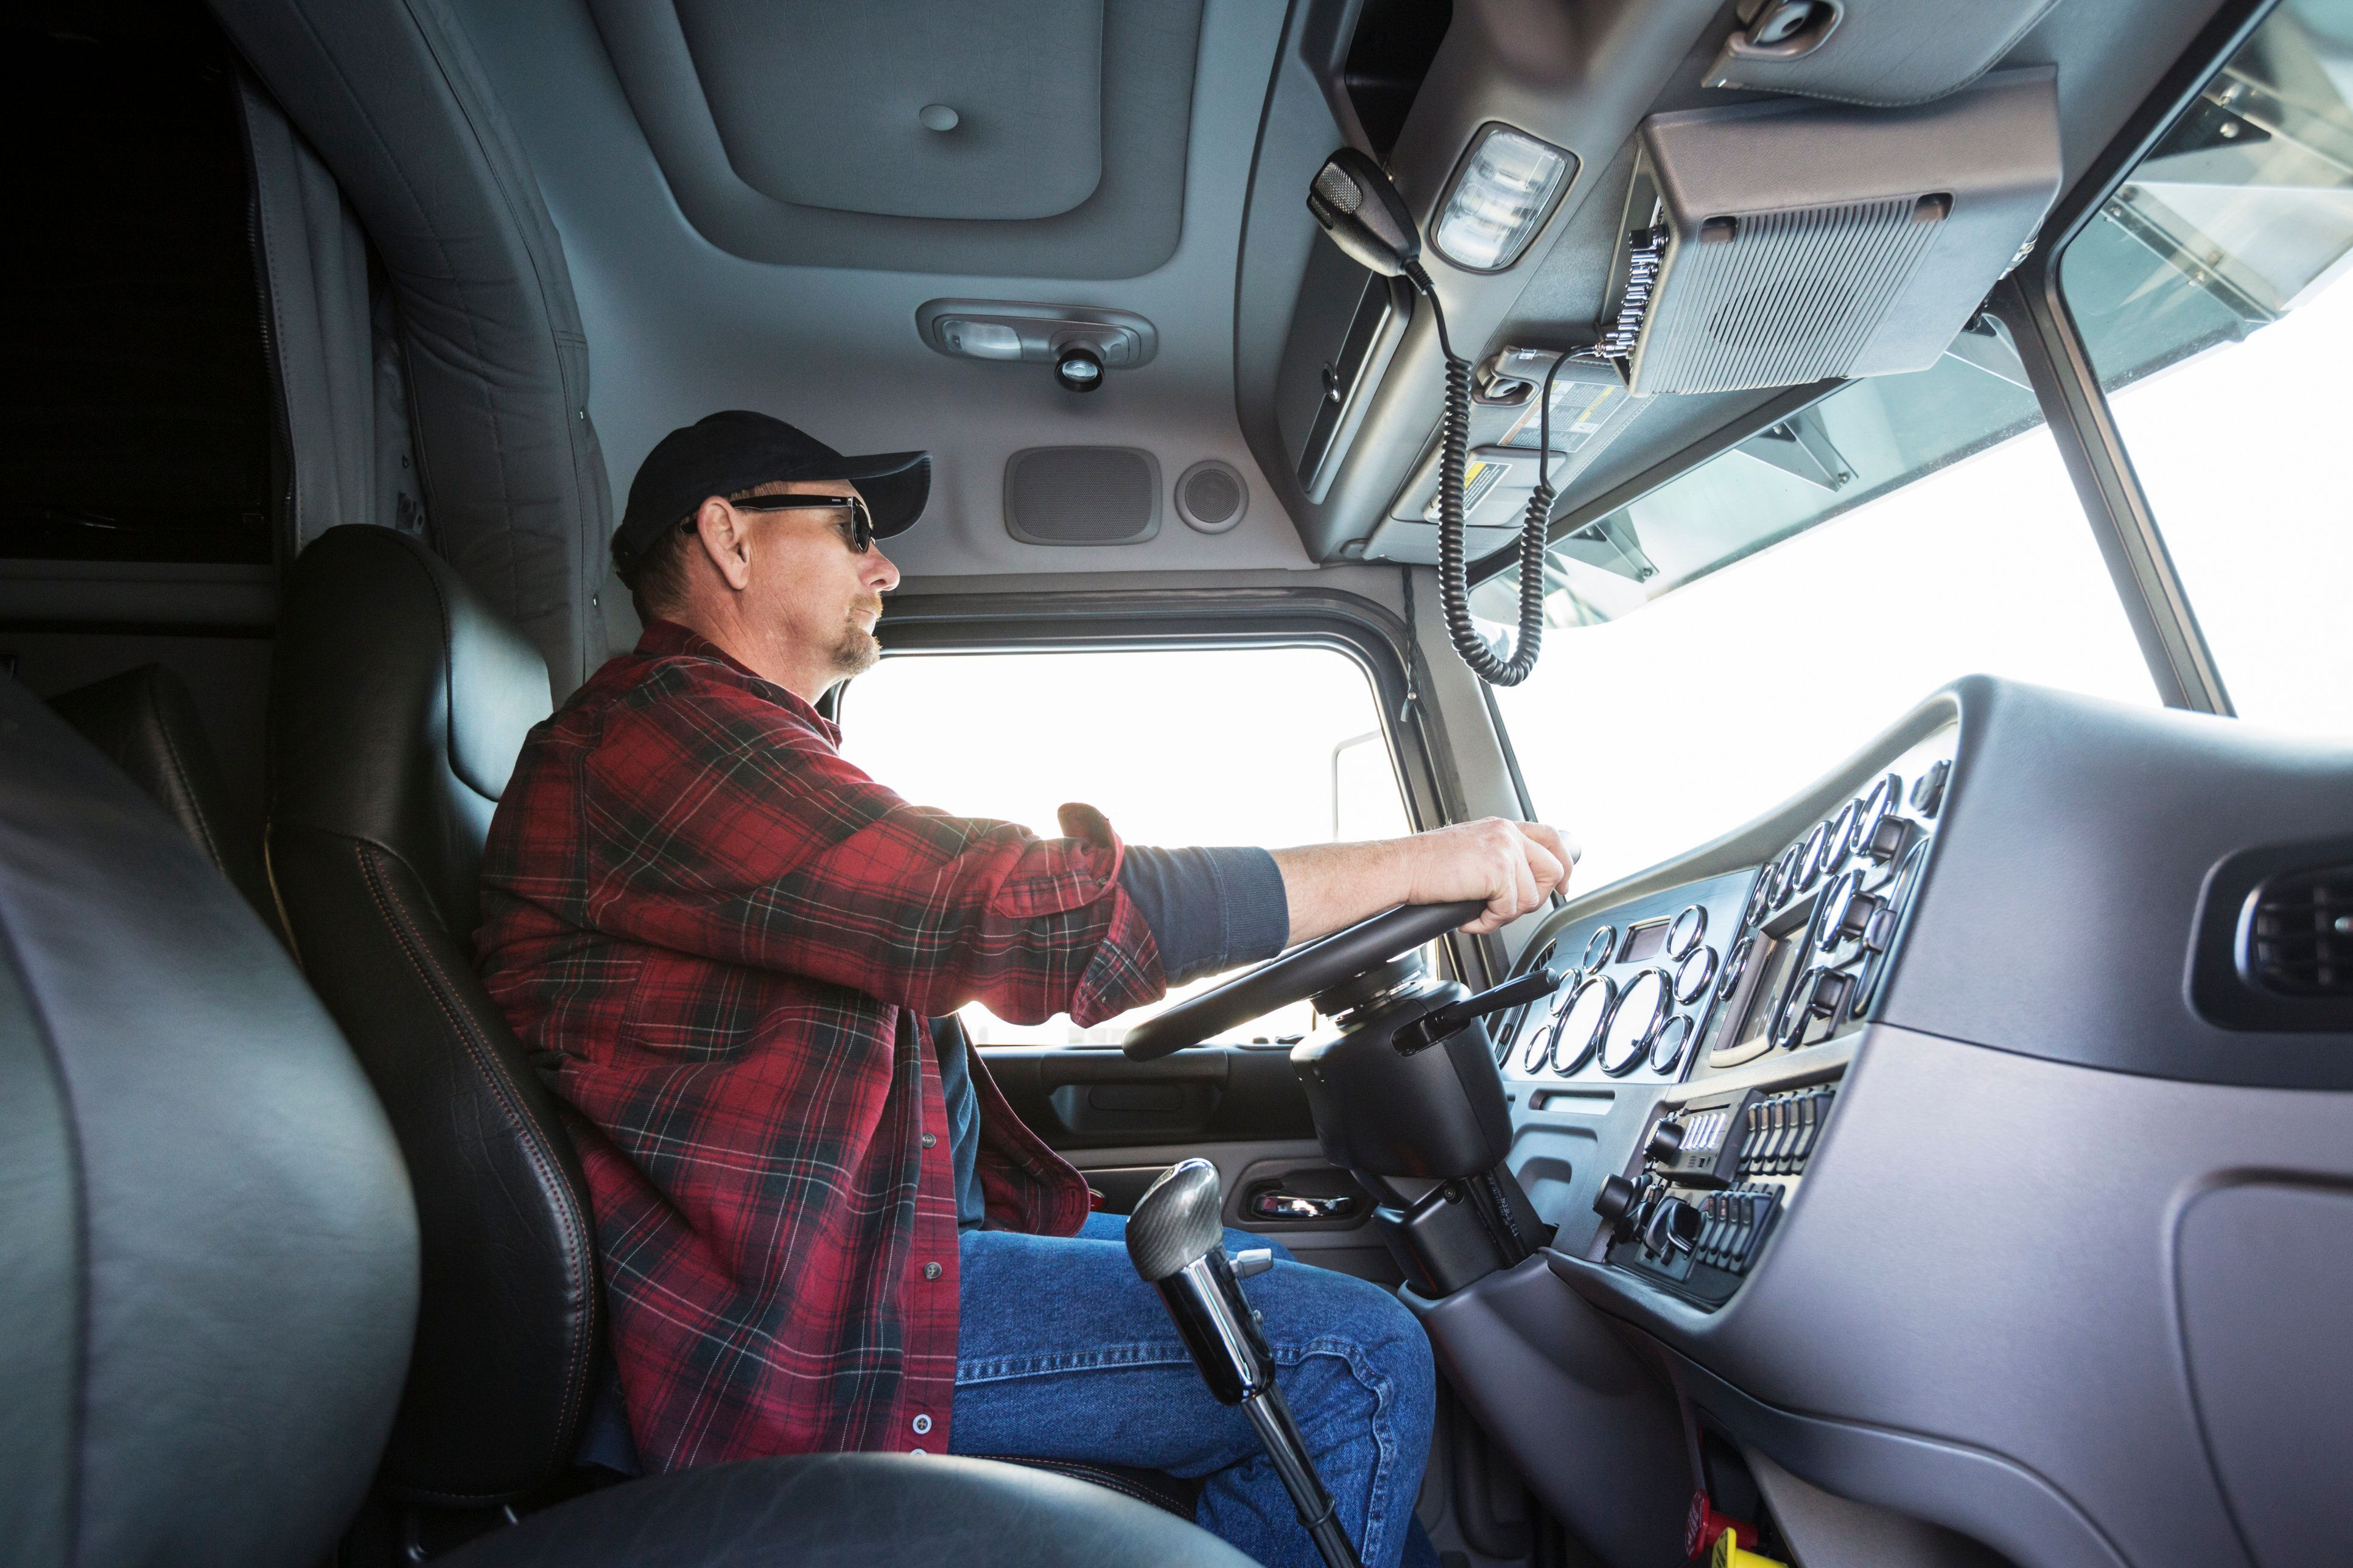 Truck driver at wheel in cab of truck